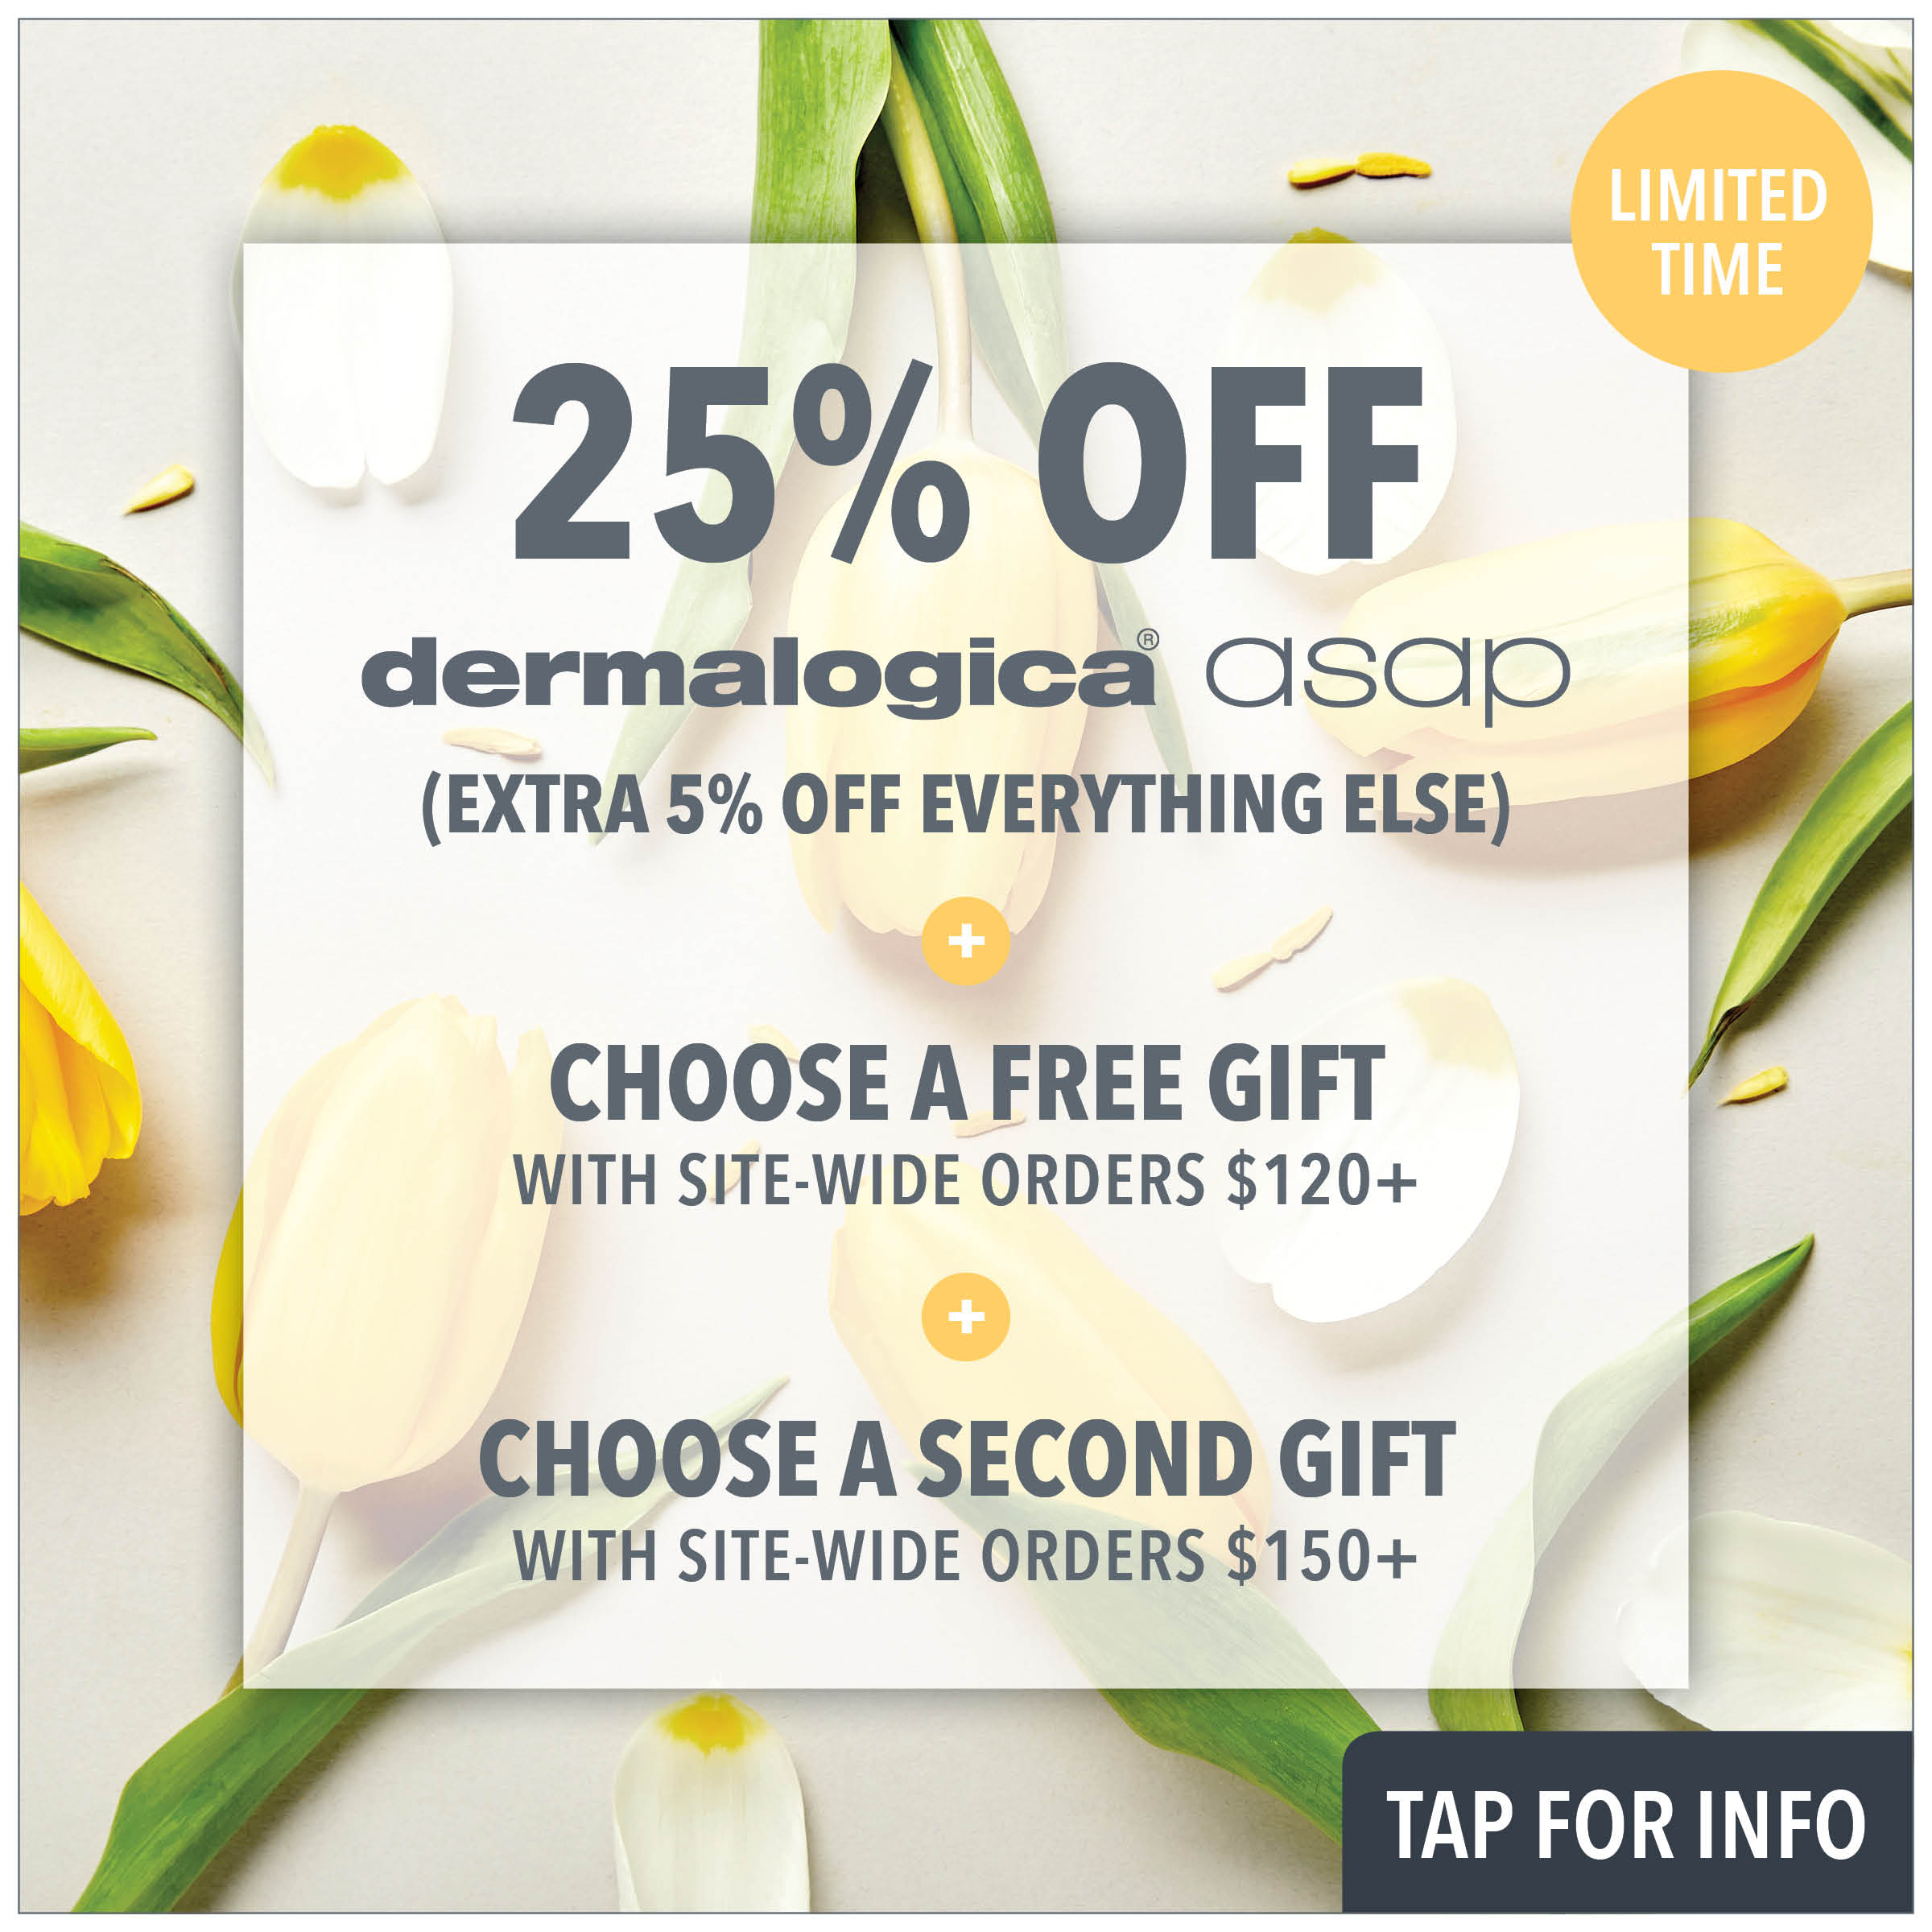 25% off asap and dermalogica from prodermal